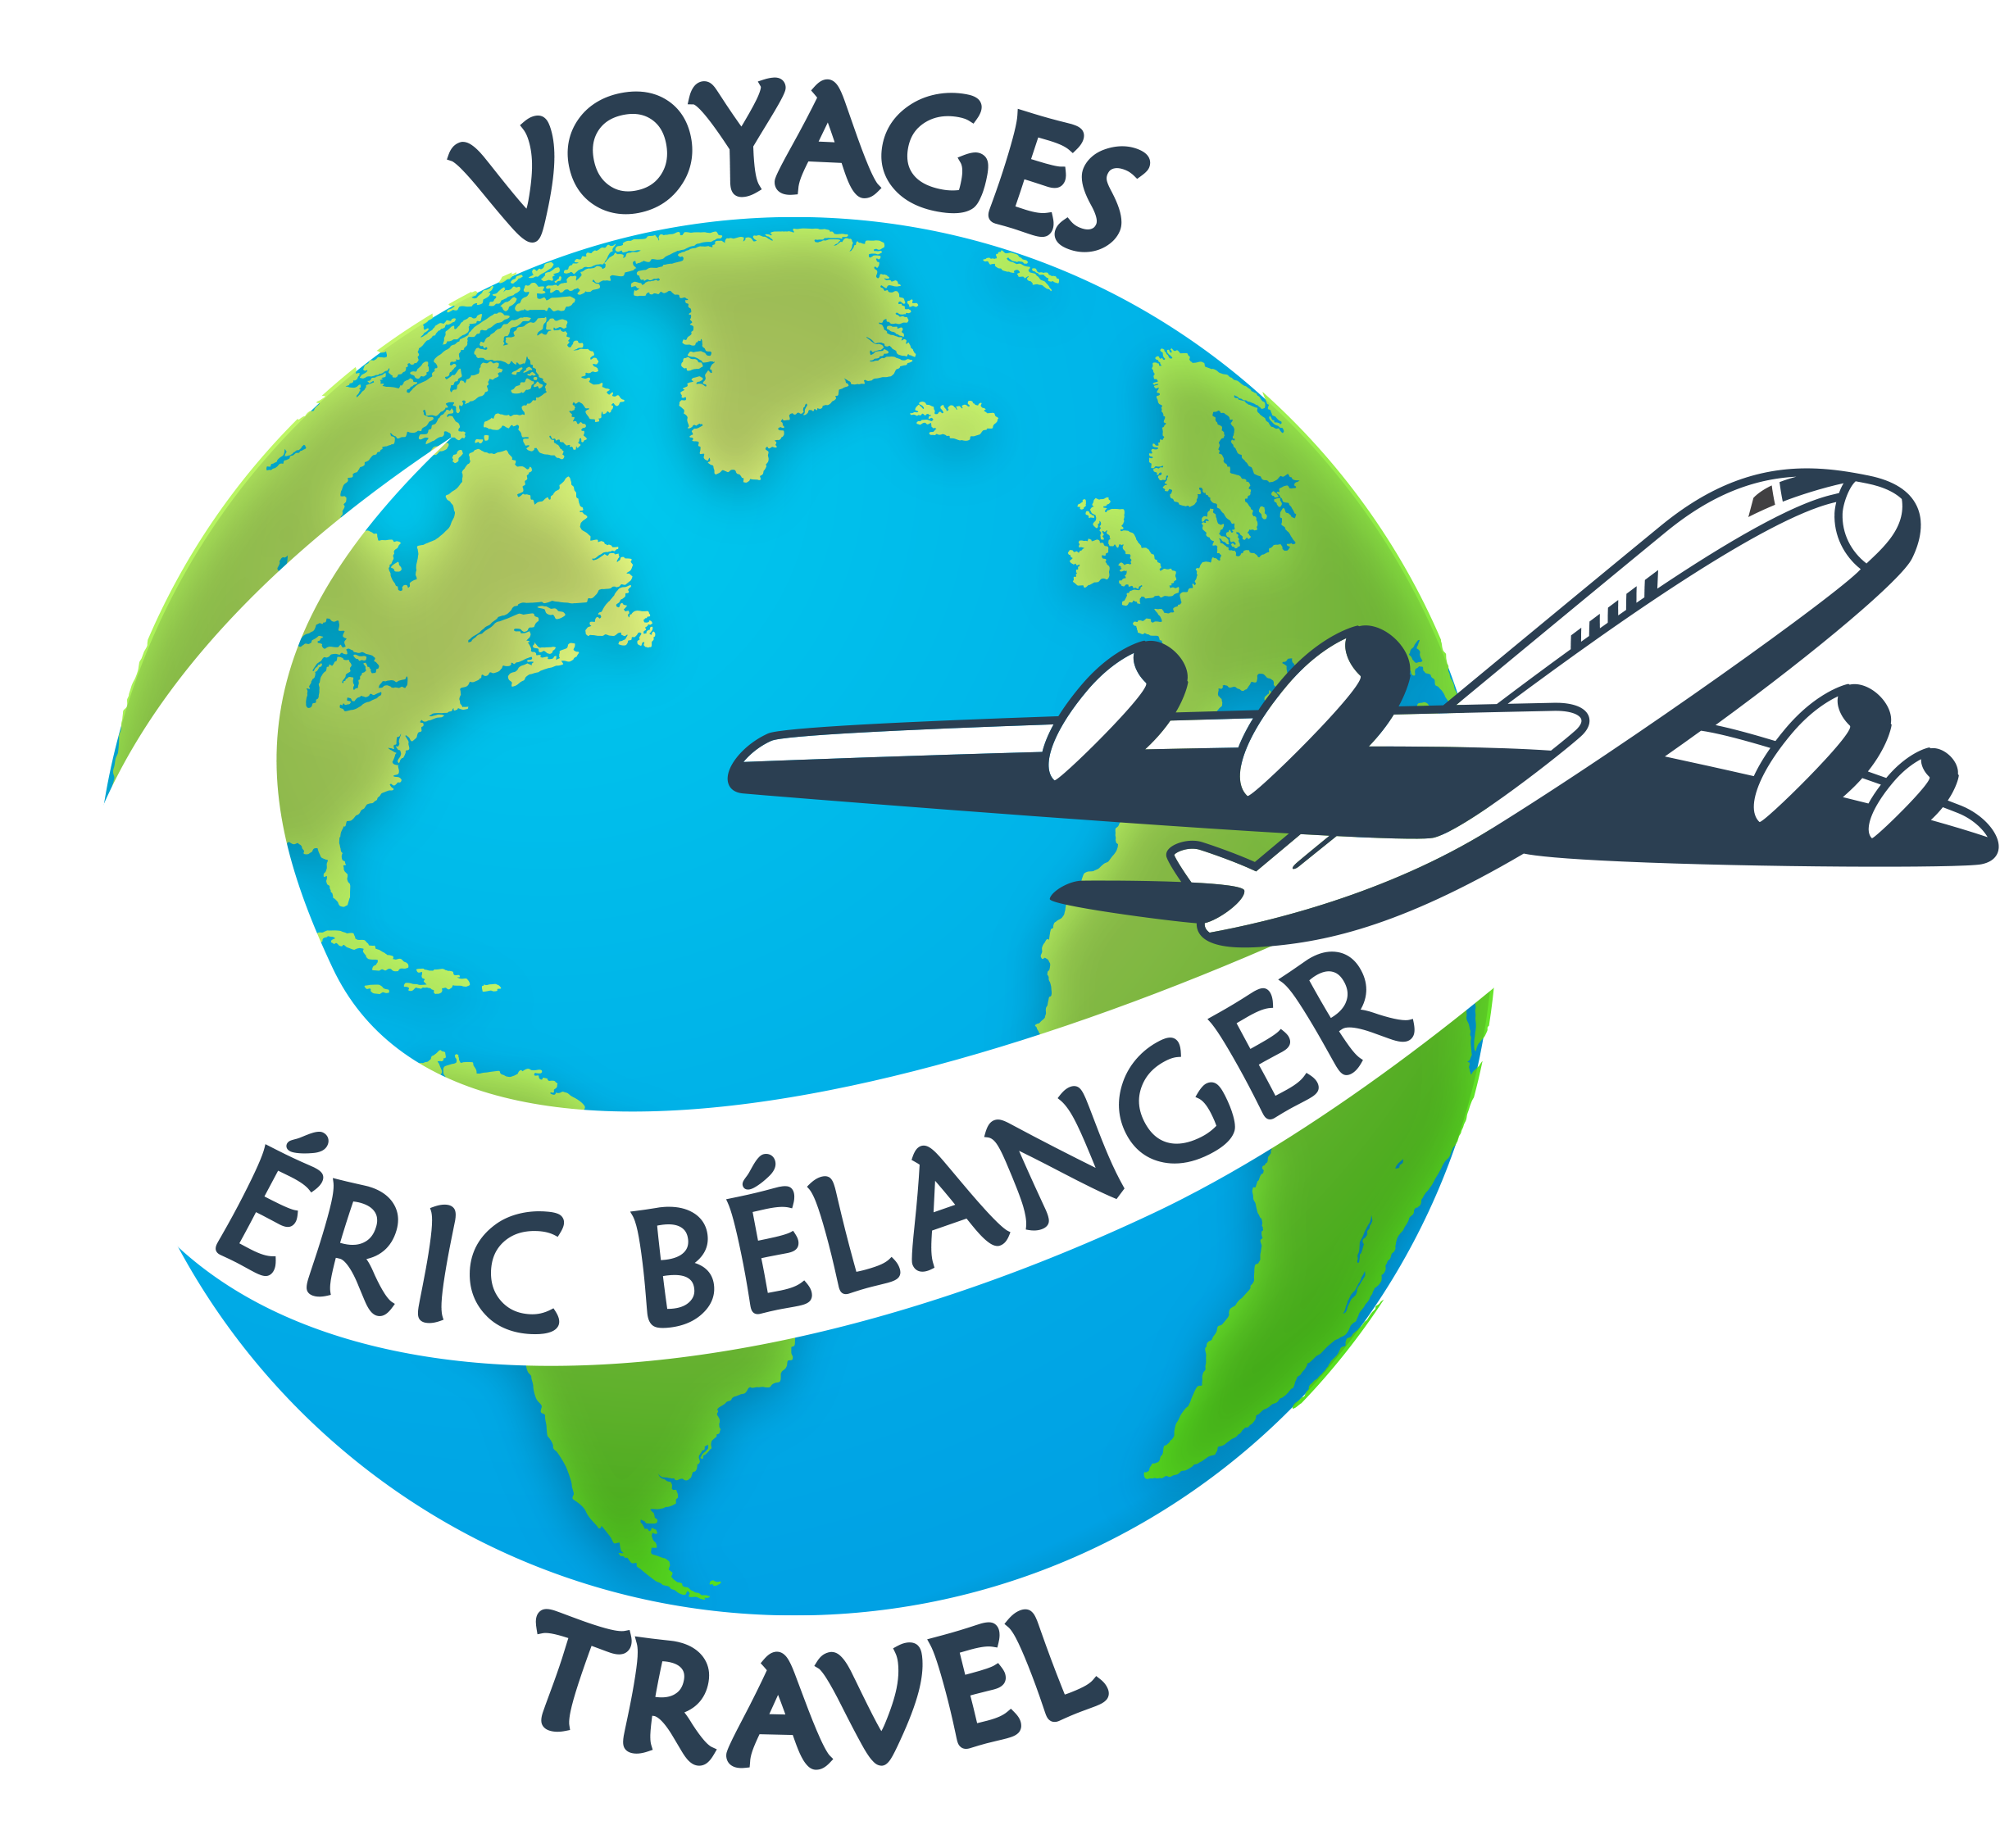 Home voyages eric belanger. Telephone clipart rang